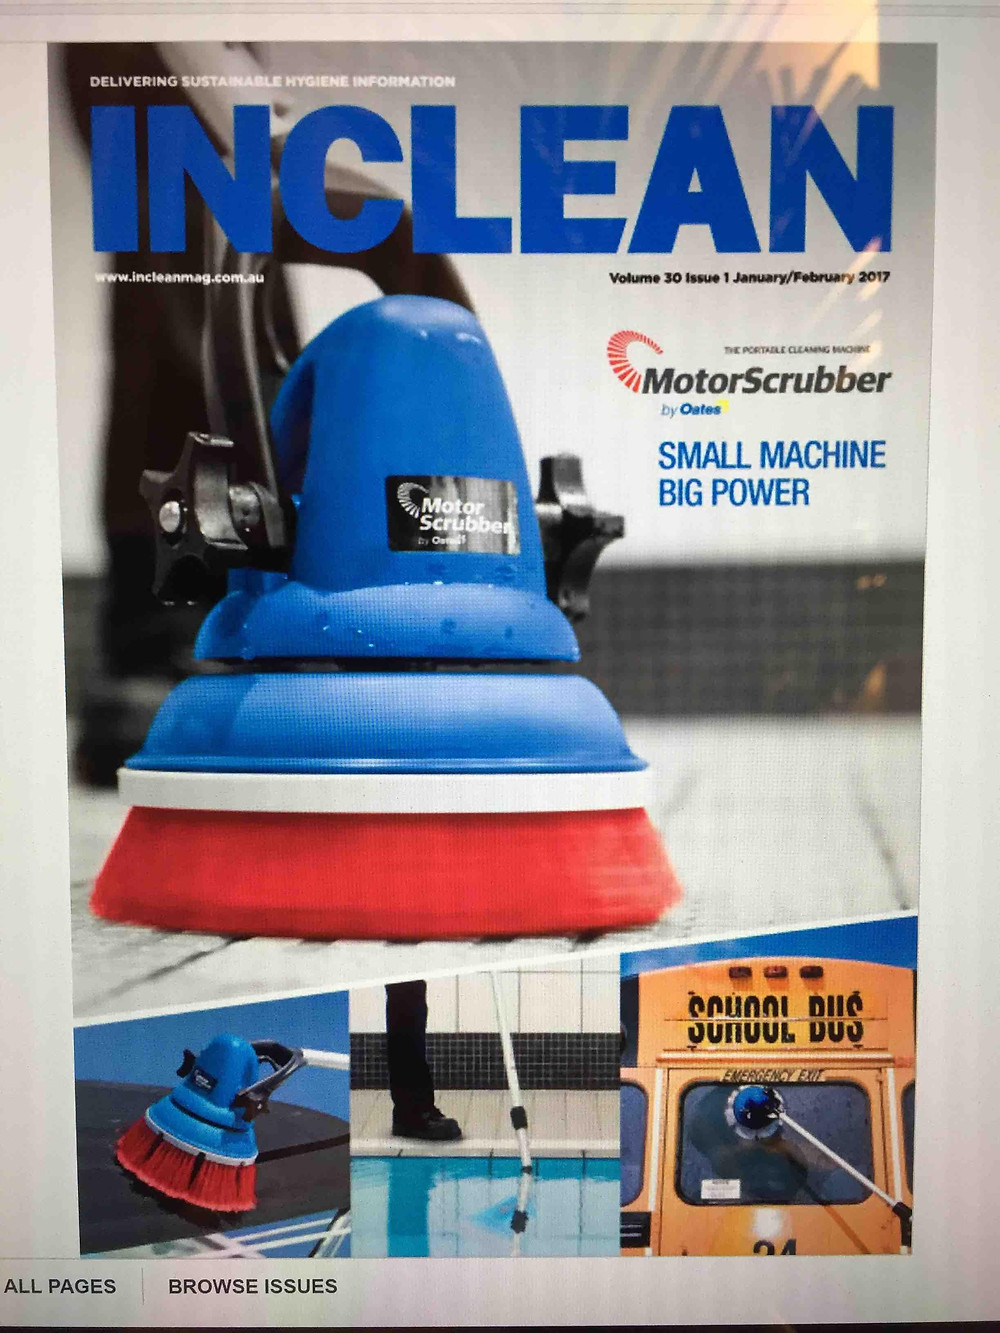 Congrats to our Manufacturer Partner, MotorScrubber! Nothing like making the front cover of INCLEAN Magazine...! Contact your RTF Group Representative for all the exciting detials..!